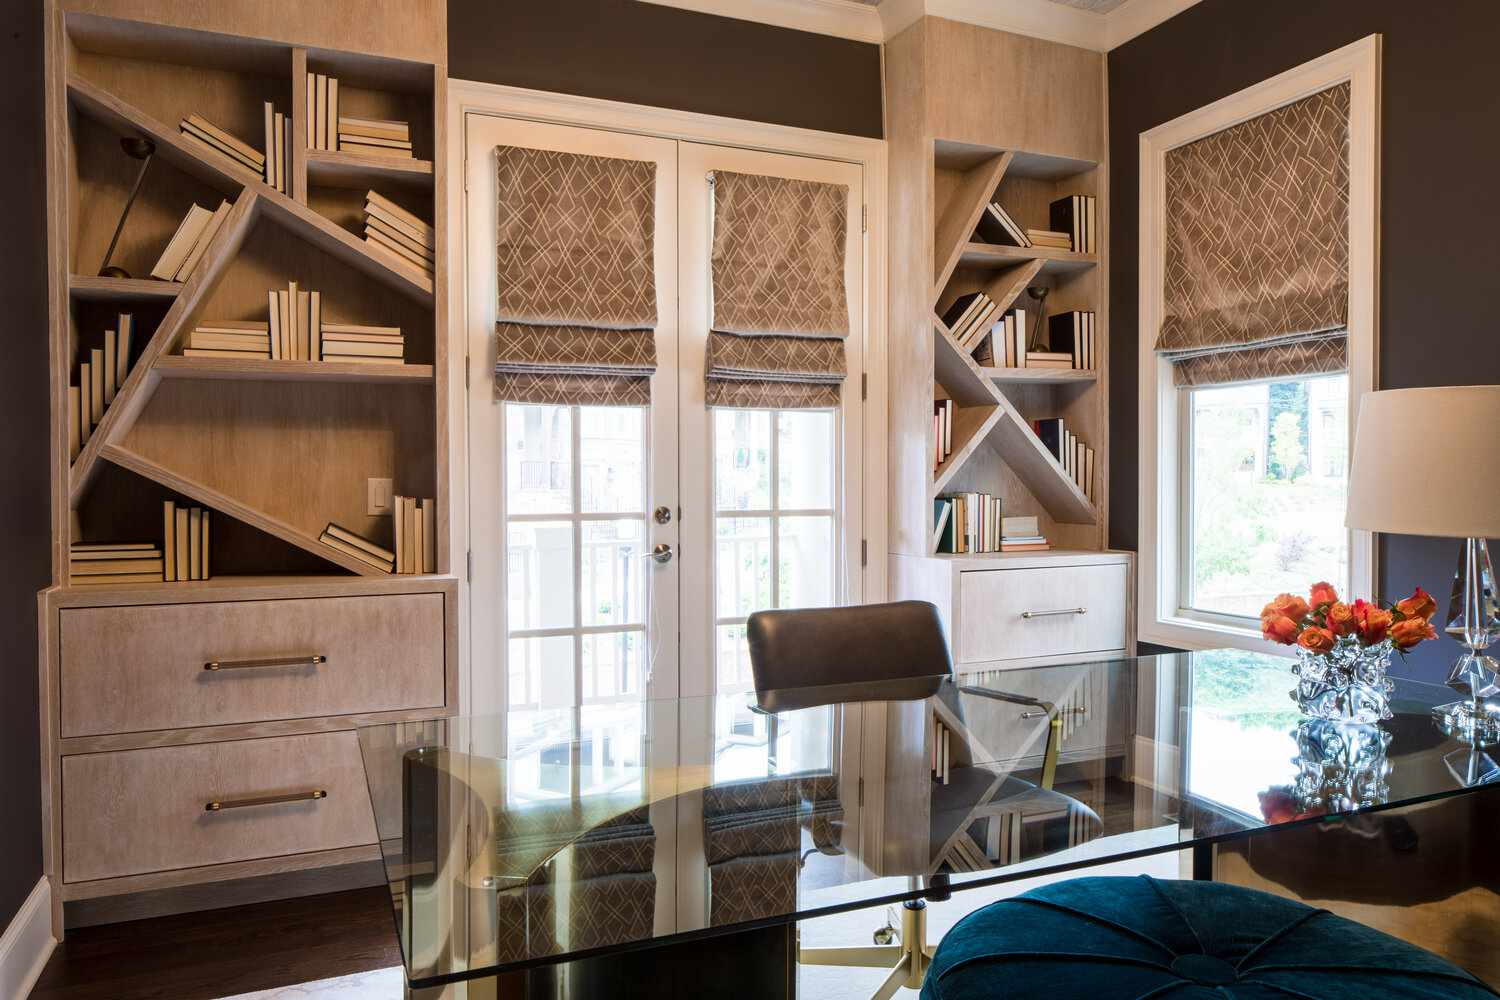 Office with abstract bookshelves